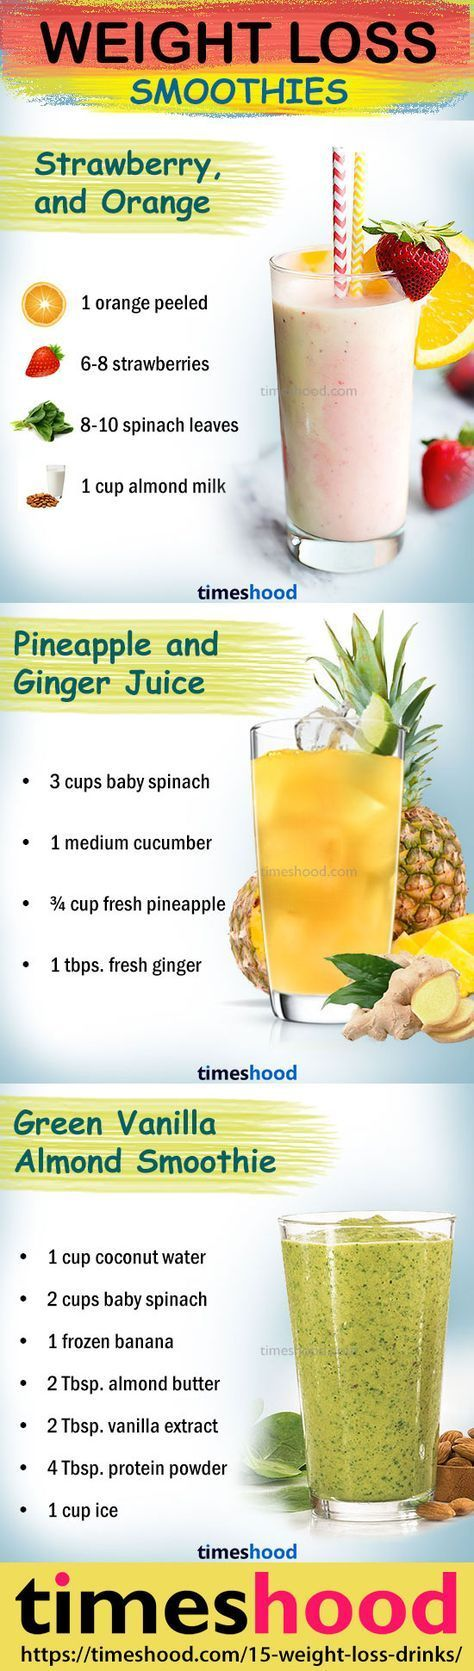 Healthy smoothie recipes for weight loss. Drink to lose weight. Weight loss smoothie recipes. Fat burning smoothies for fast weight loss. Check out 15 effective weight loss Drinks/Detox/Juice/Smoothies that works fast. https://timeshood.com/15-weight-loss-drinks/ #weightlossjuicing